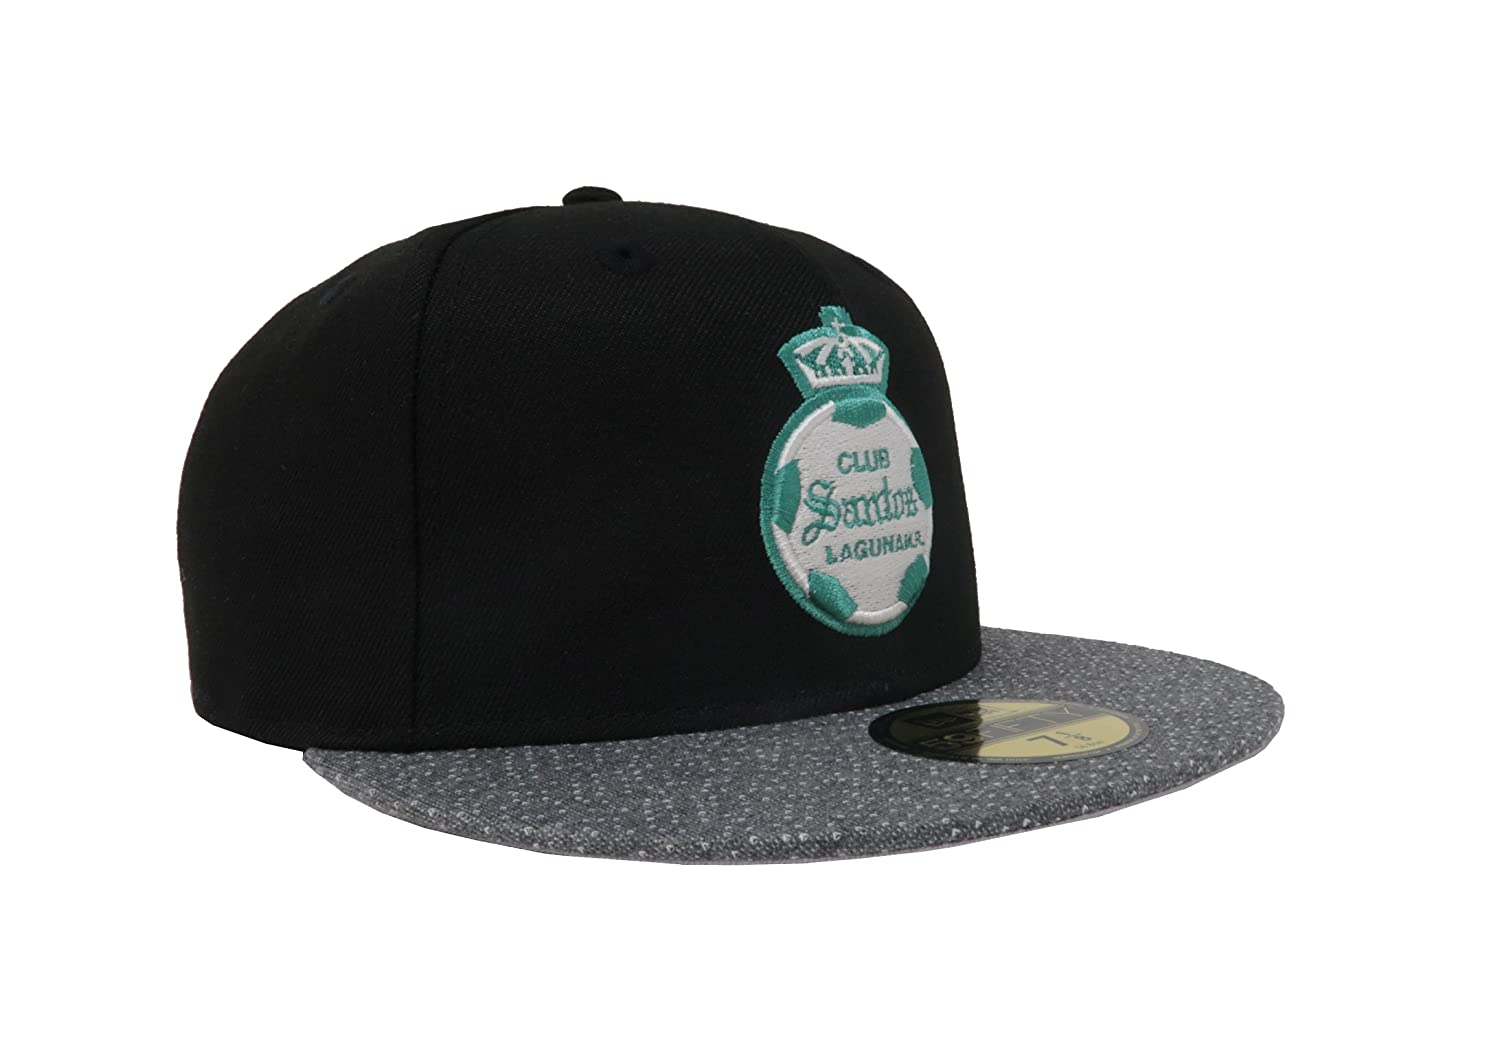 Amazon.com: New Era 59Fifty Hat Santos Laguna Soccer Club Liga MX Official Black/Gray Vize Cap: Clothing